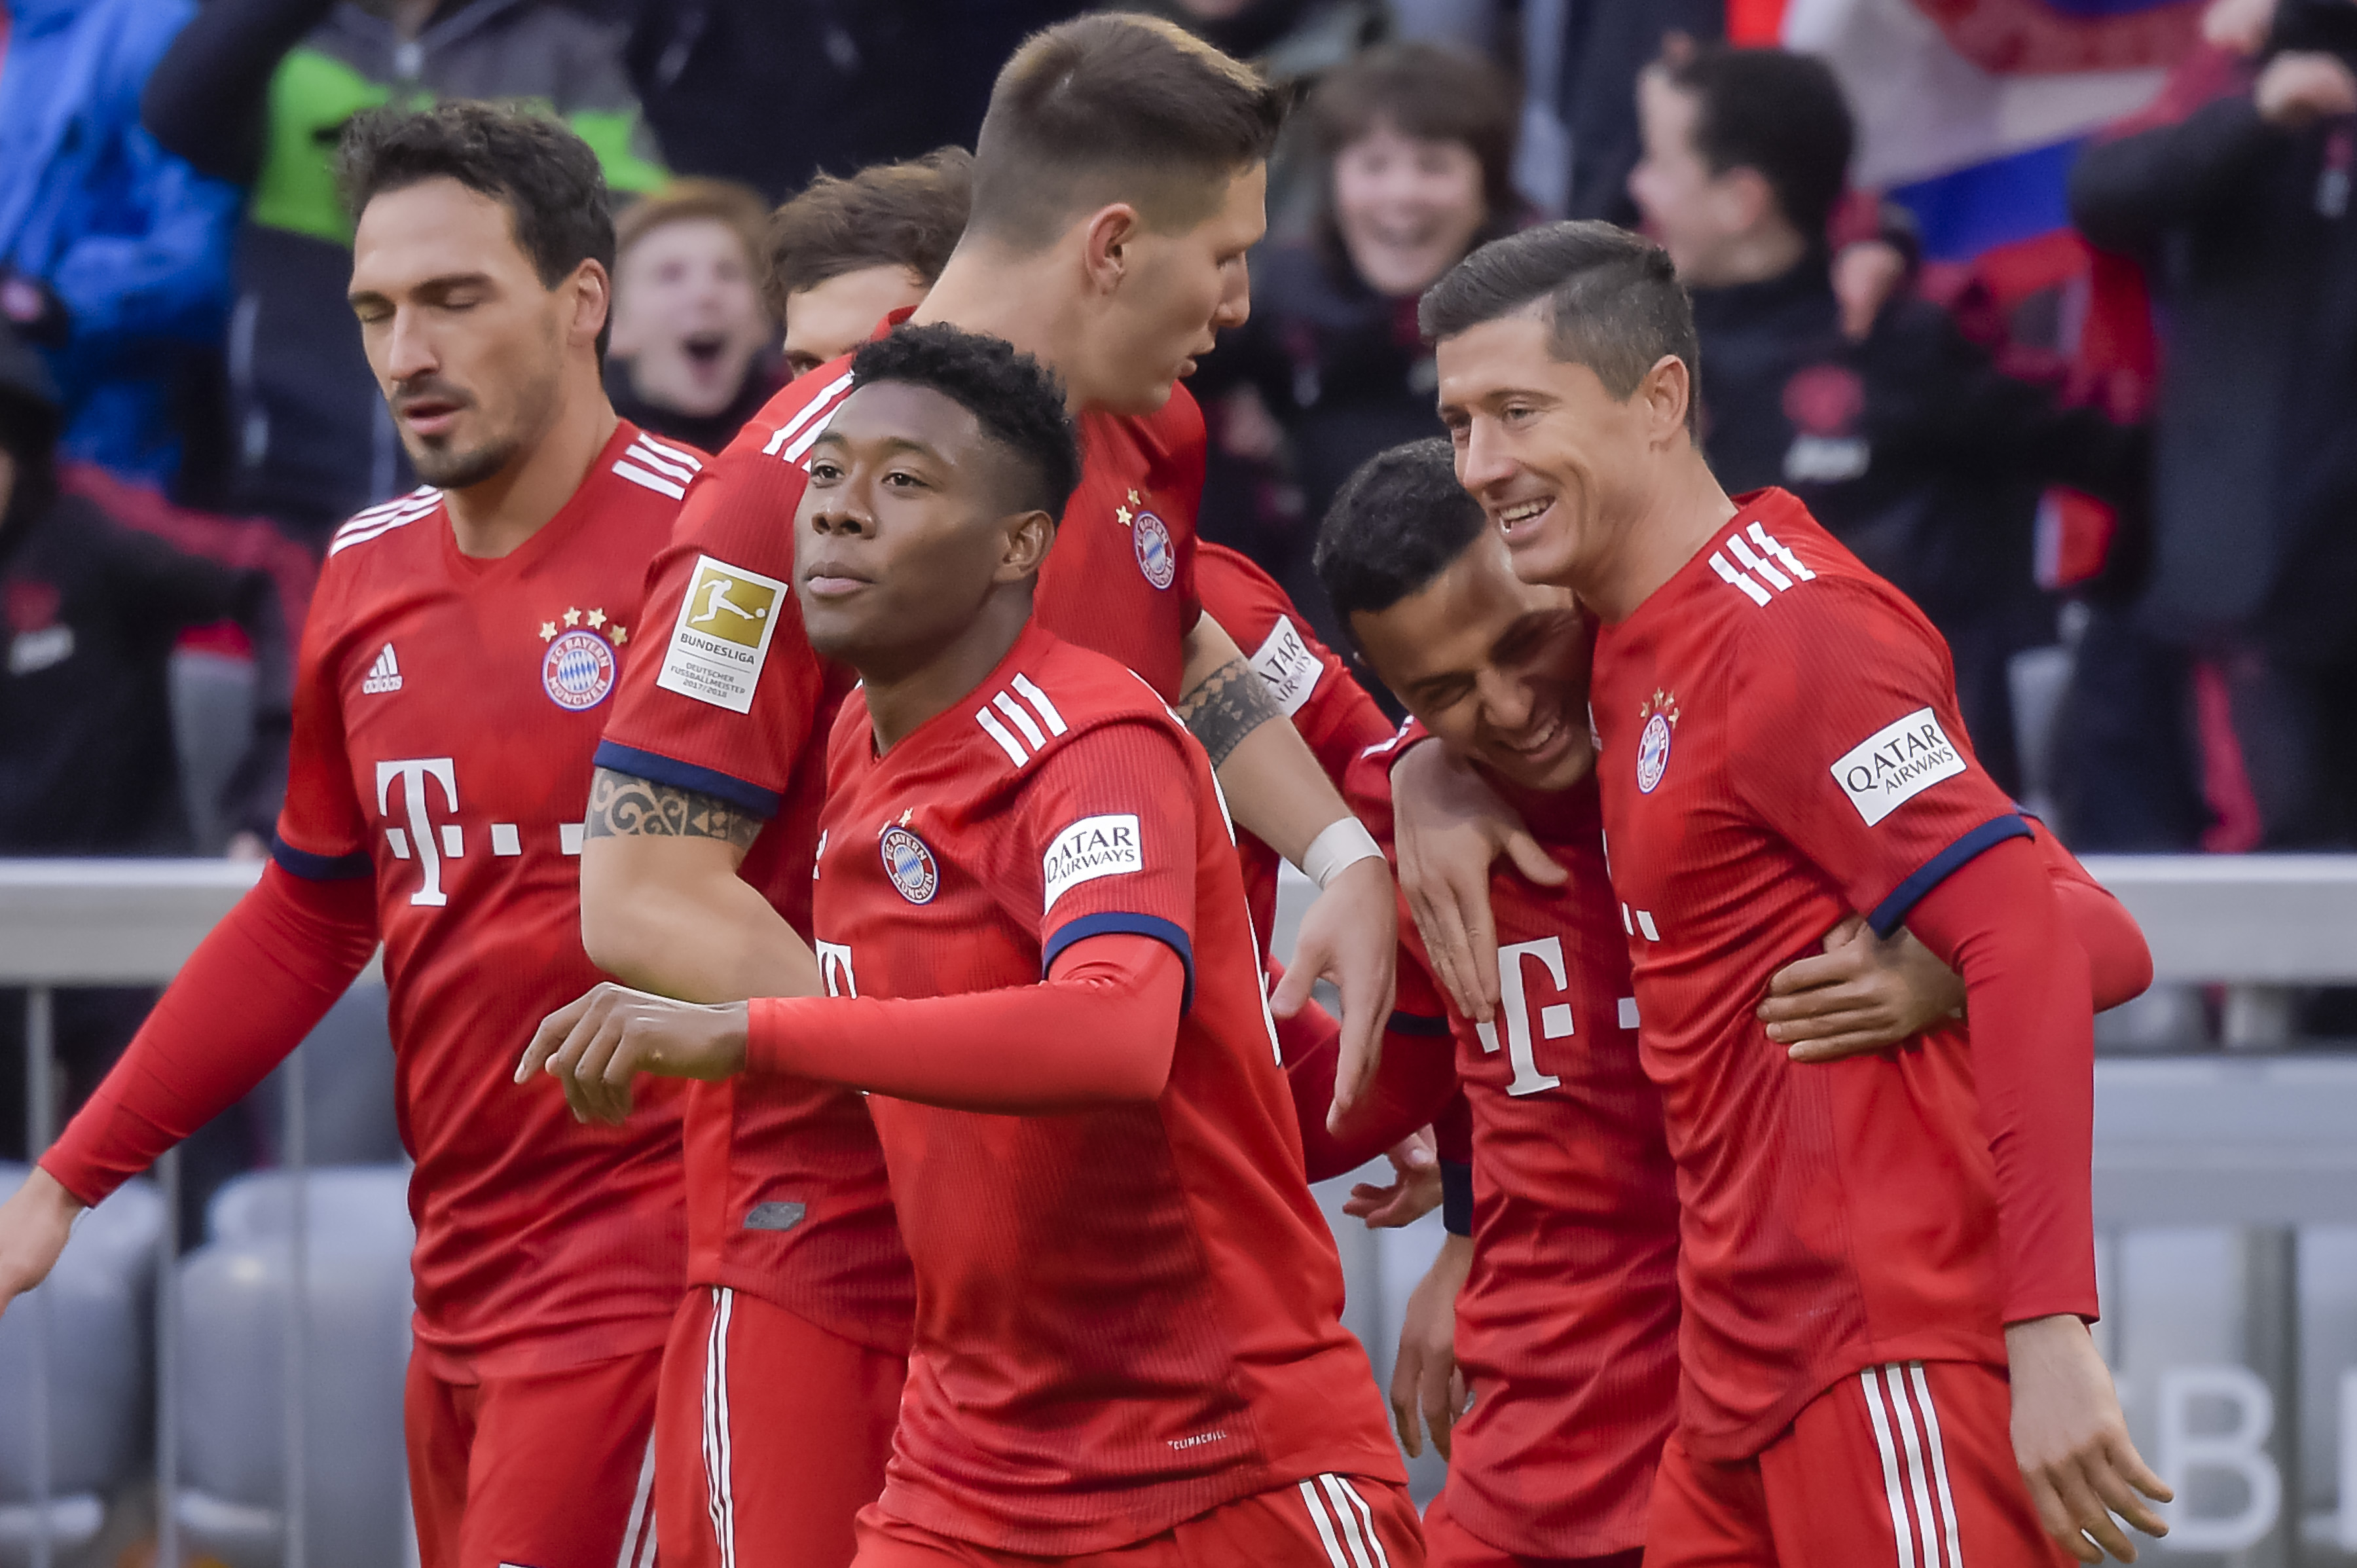 Players of Bayern Munich celebrate the first goal  during the German first division Bundesliga football match FC Bayern Munich vs VfB Stuttgart in the southern German city of Munich on January 27, 2019. (Photo by Guenter SCHIFFMANN / AFP)